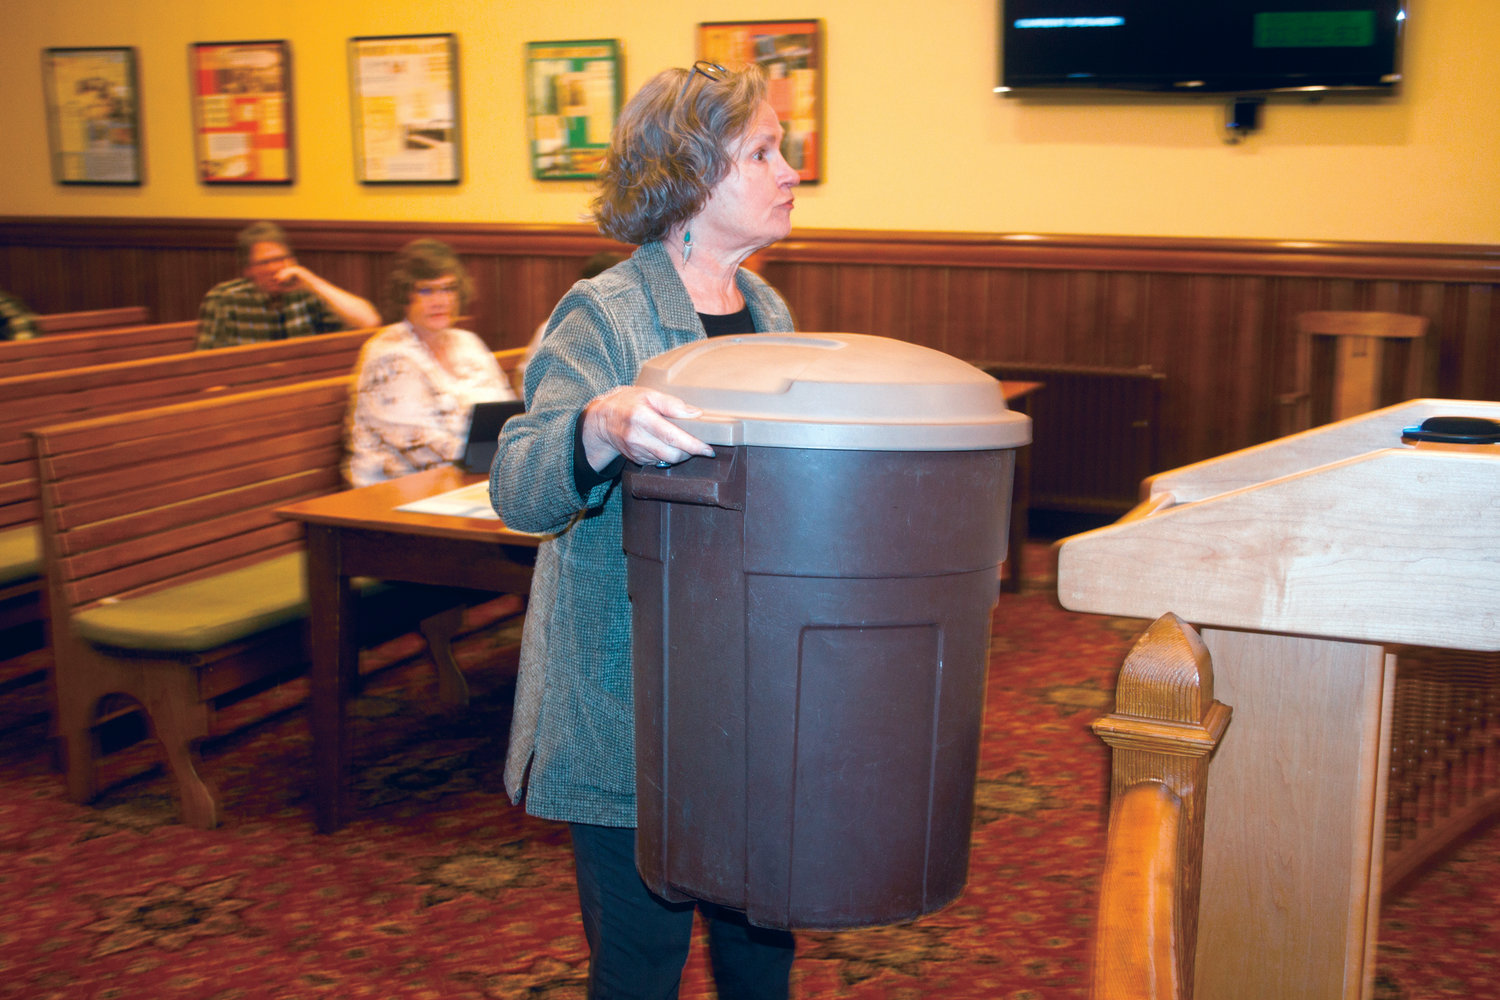 Renee Busch brought her 20-gallon bin to city council chambers to illustrate the city's failure to reward waste reduction.